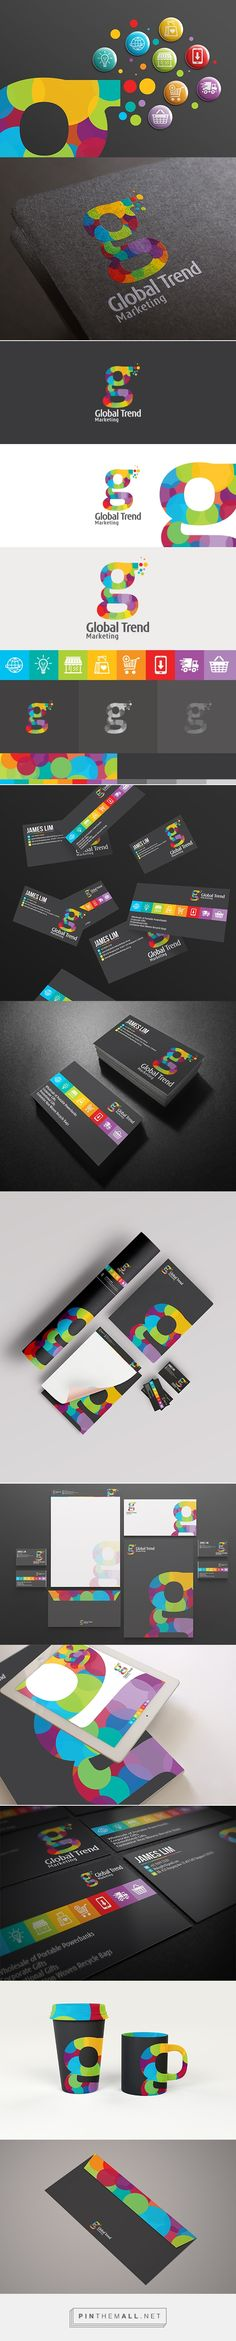 Global Trend identity packaging branding on Behance curated by Packaging Diva PD.  Global Trend is an online technology shopping store that brings in the best and latest tech stuff in town.